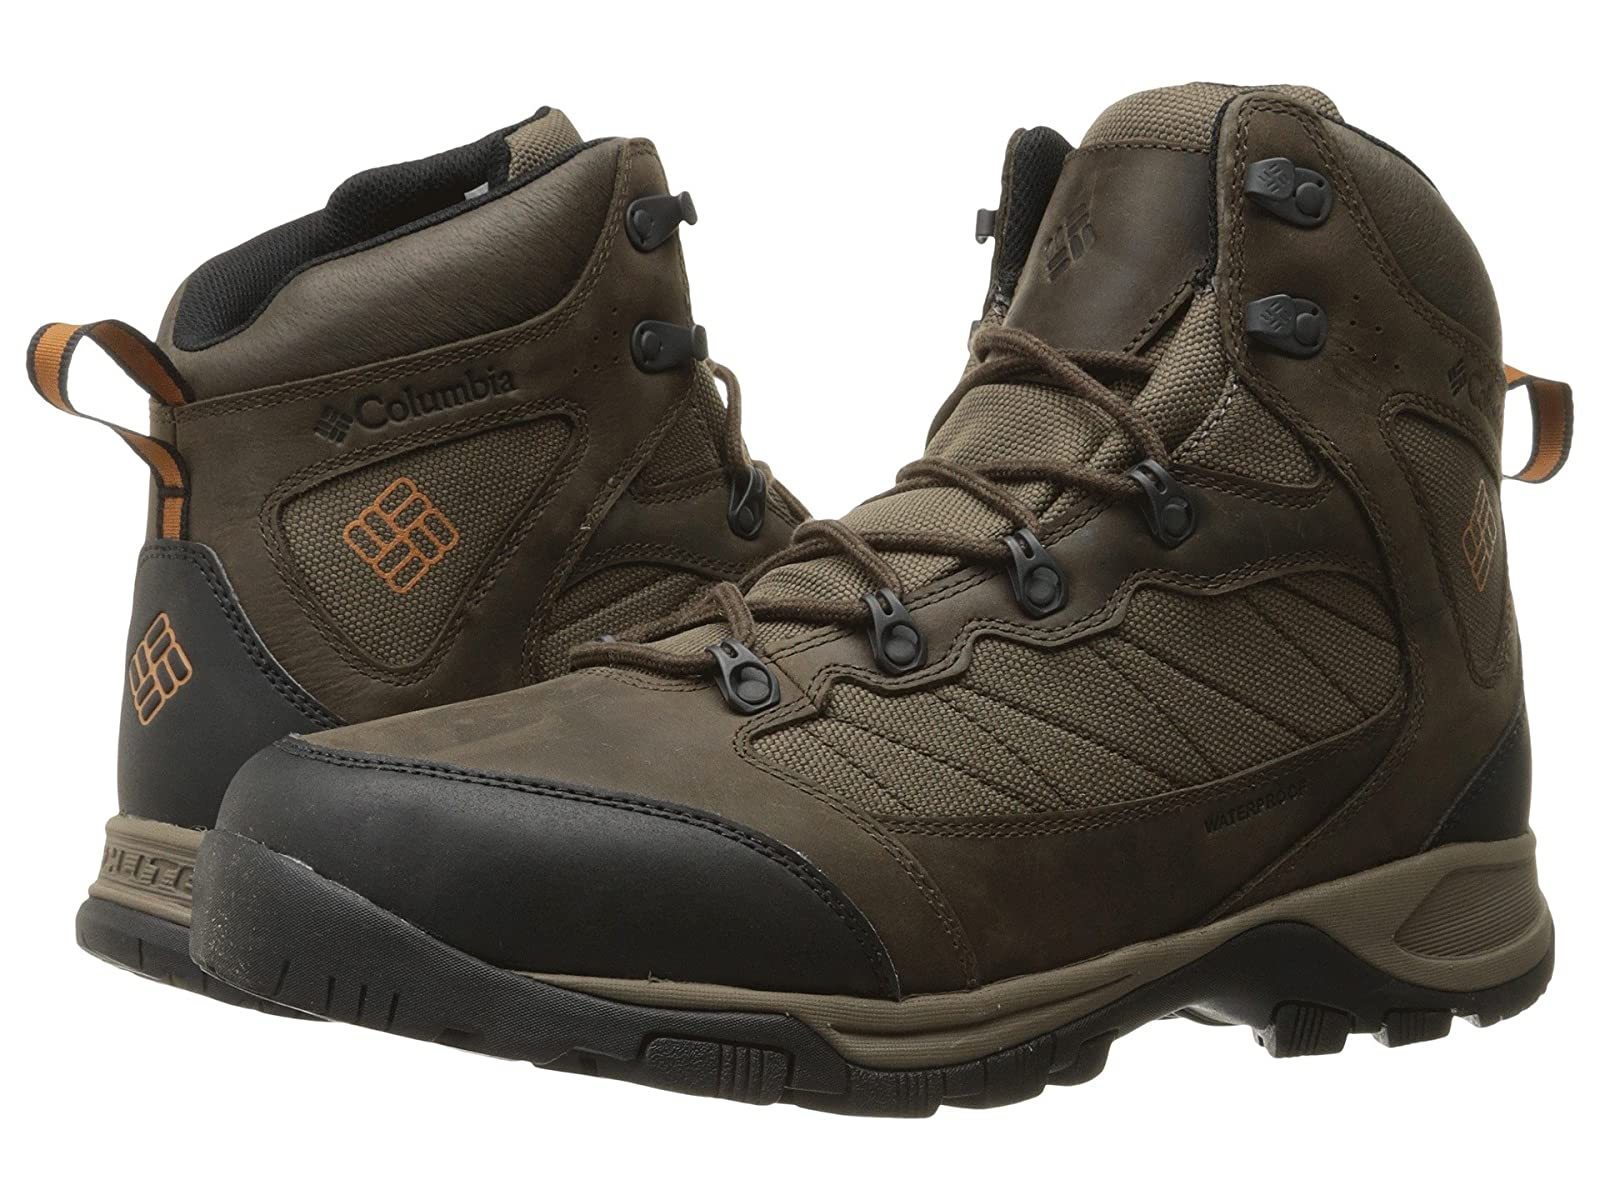 Columbia Cascade Pass WaterproofCheap and distinctive eye-catching shoes